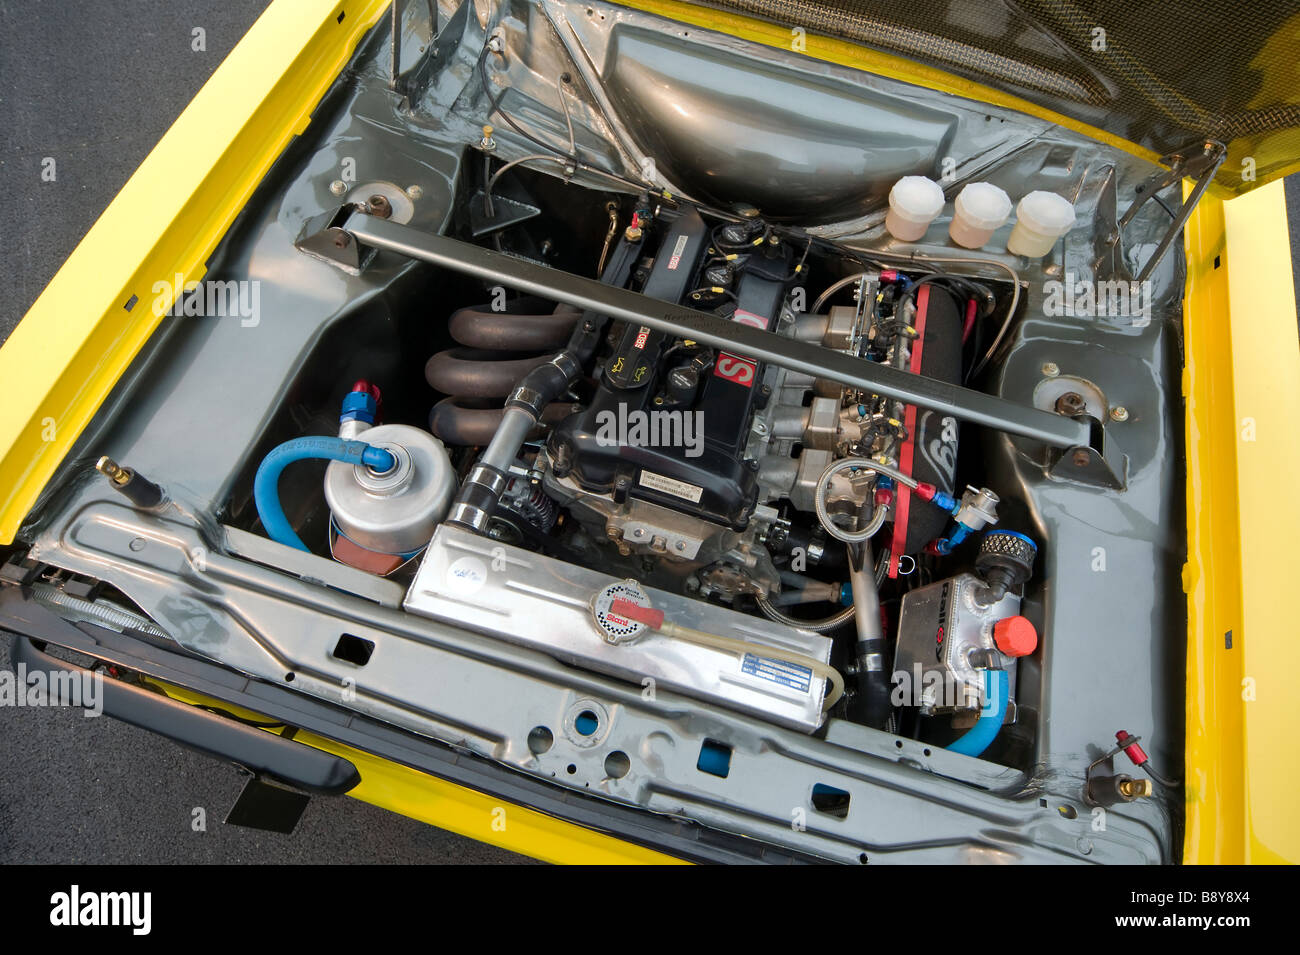 Ford Escort racing car mark two engine - Stock Image